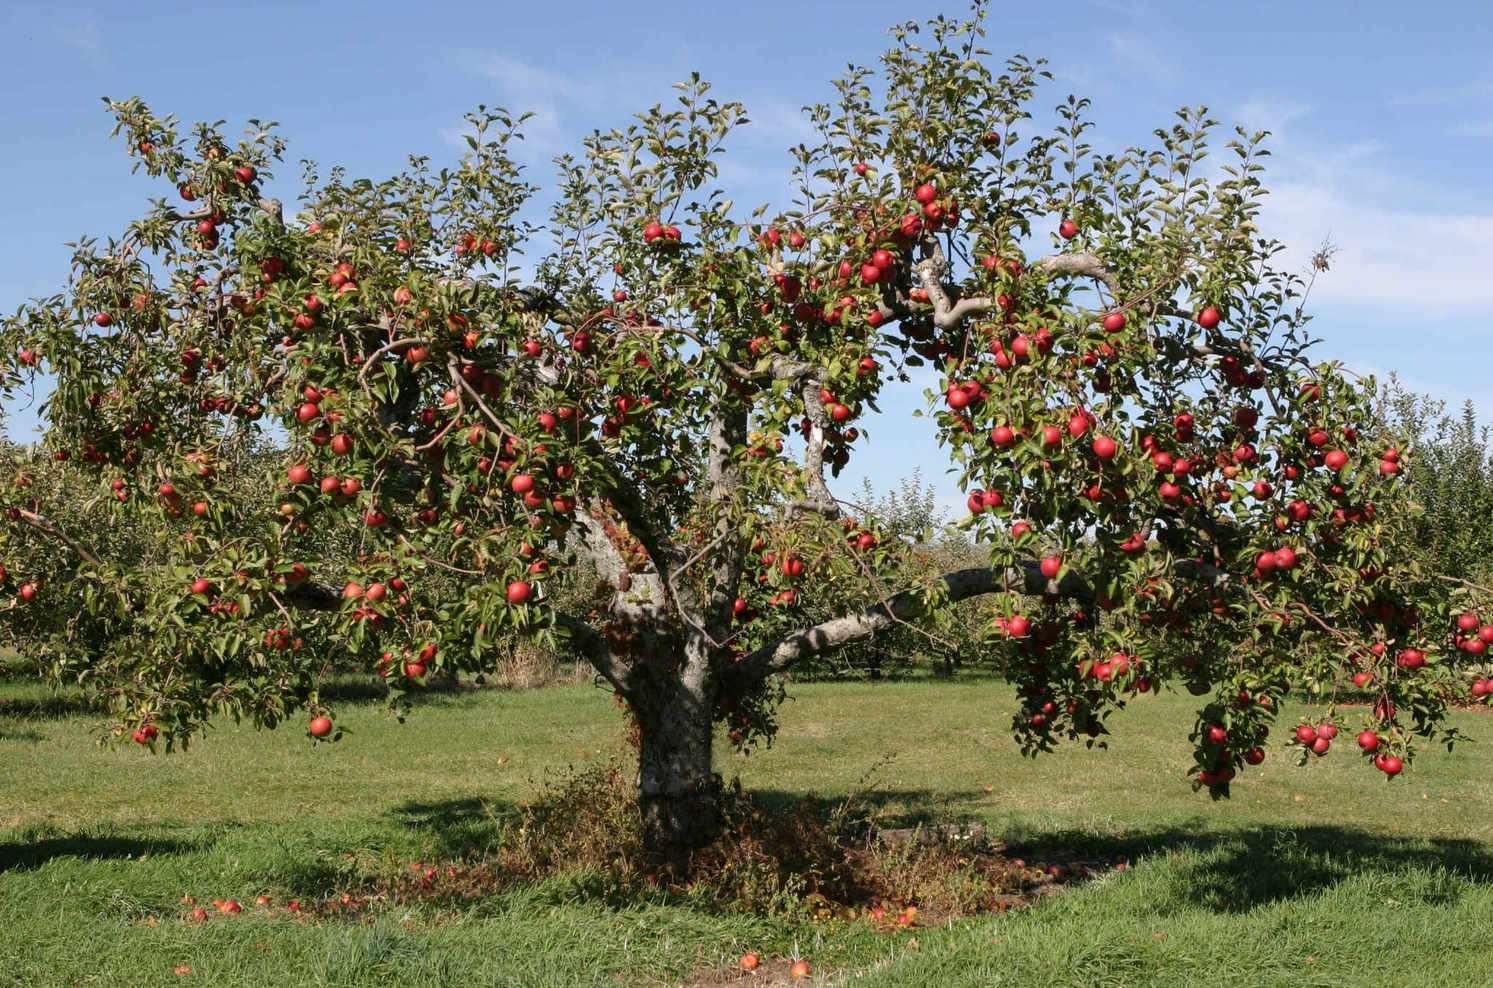 Apple-Tree in the Backyard 118.38 Kb